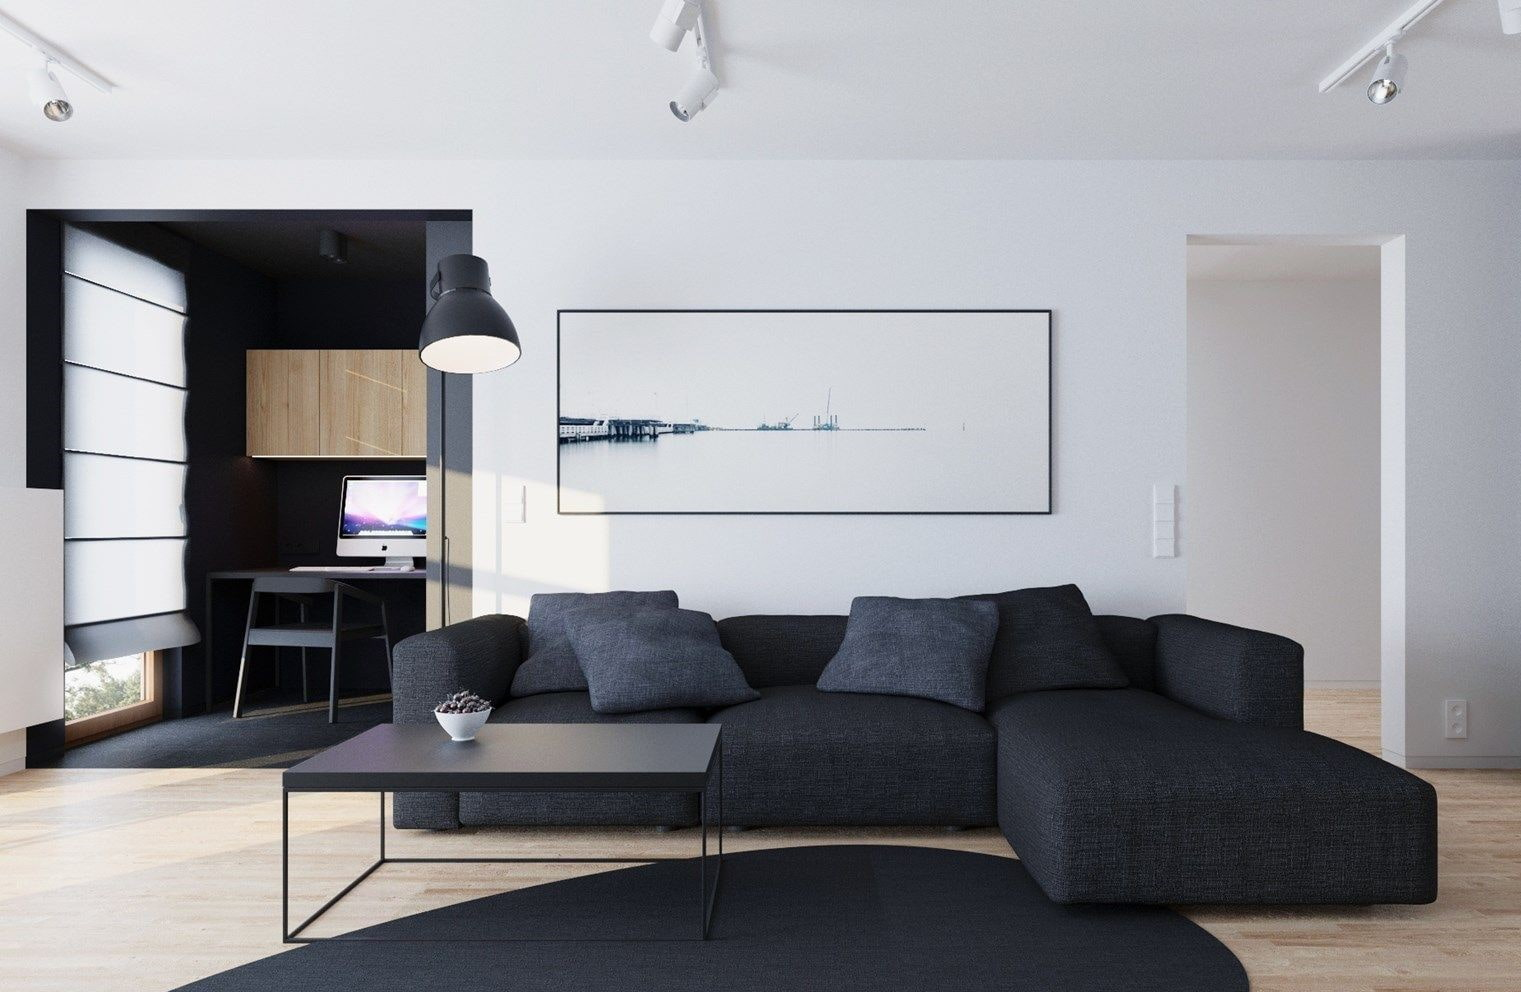 Minimalism for Living Room: Laconic Practical Design. Simple yet effective interior decoration with contrasting